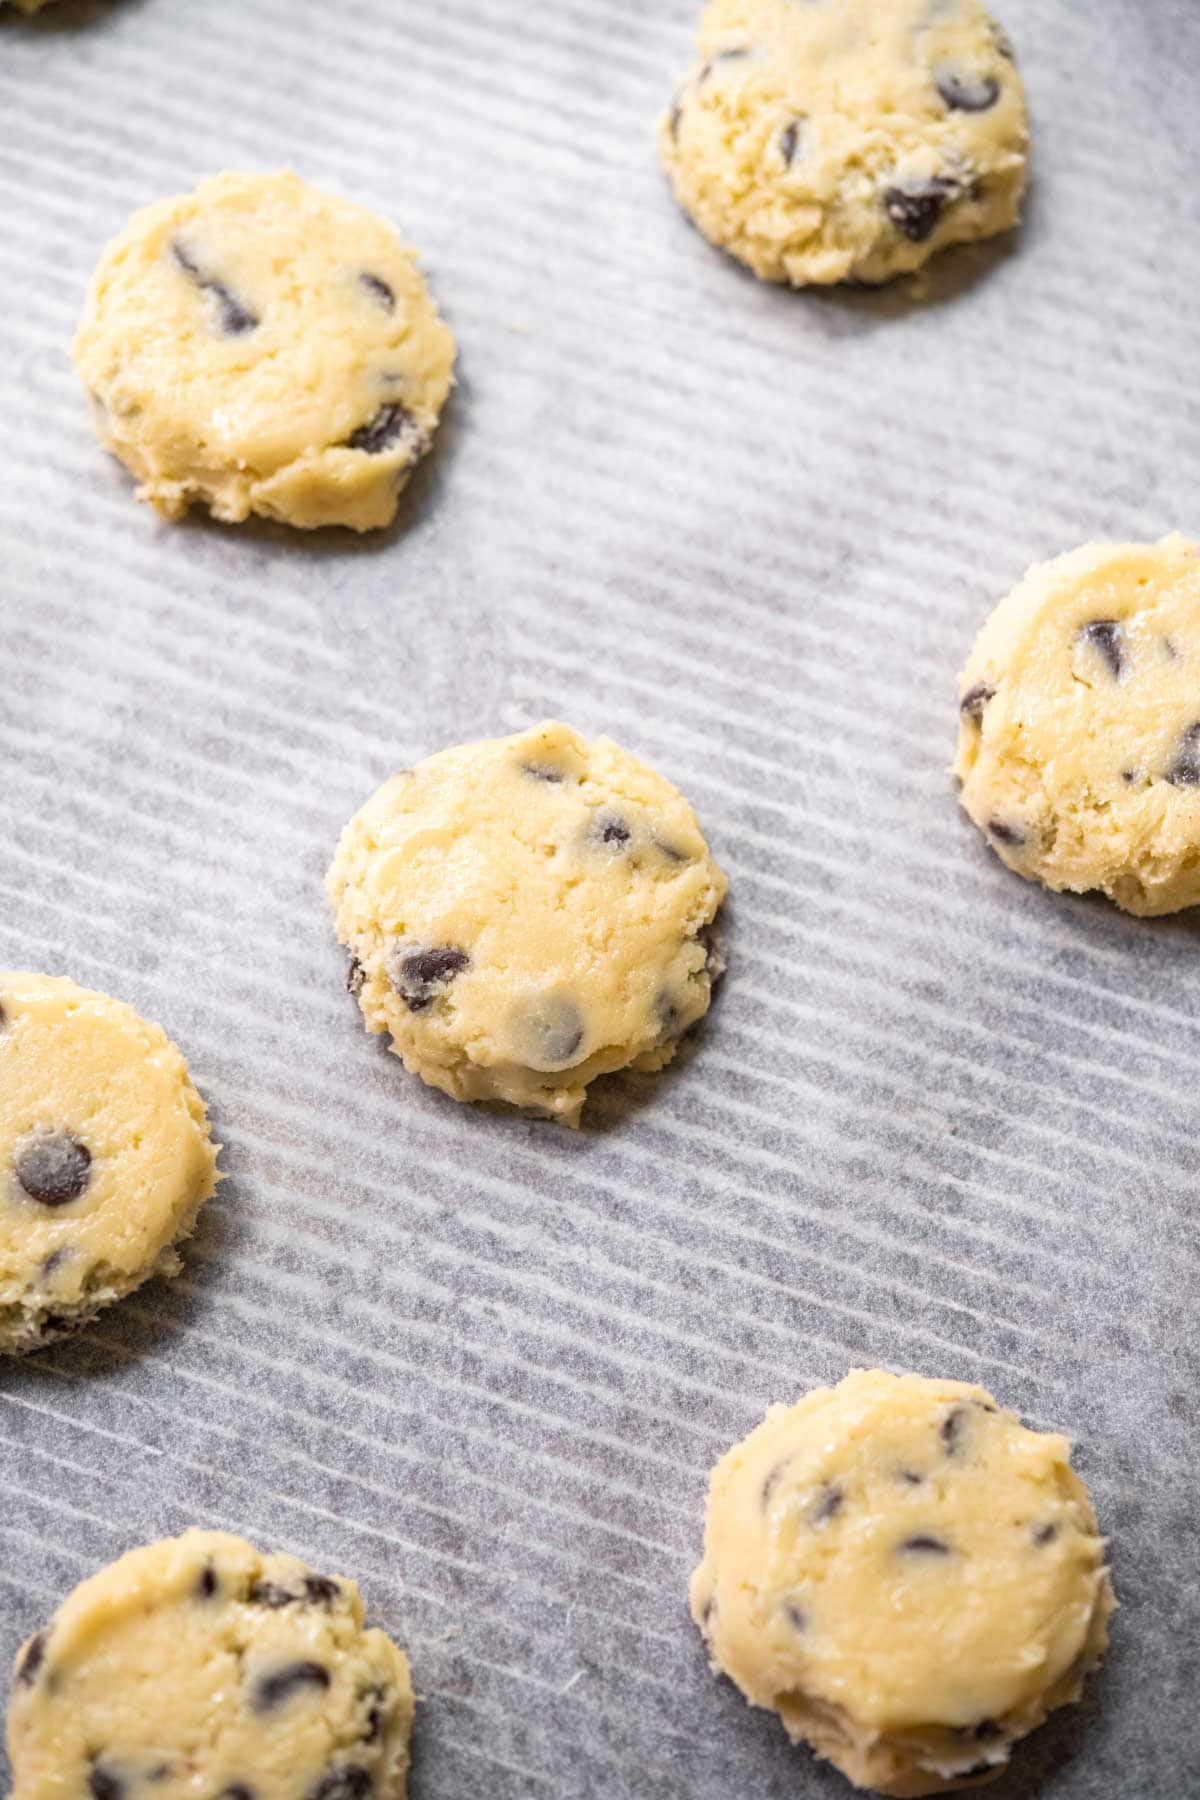 Close up of Cream Cheese Chocolate Chip Cookies dough on baking sheet